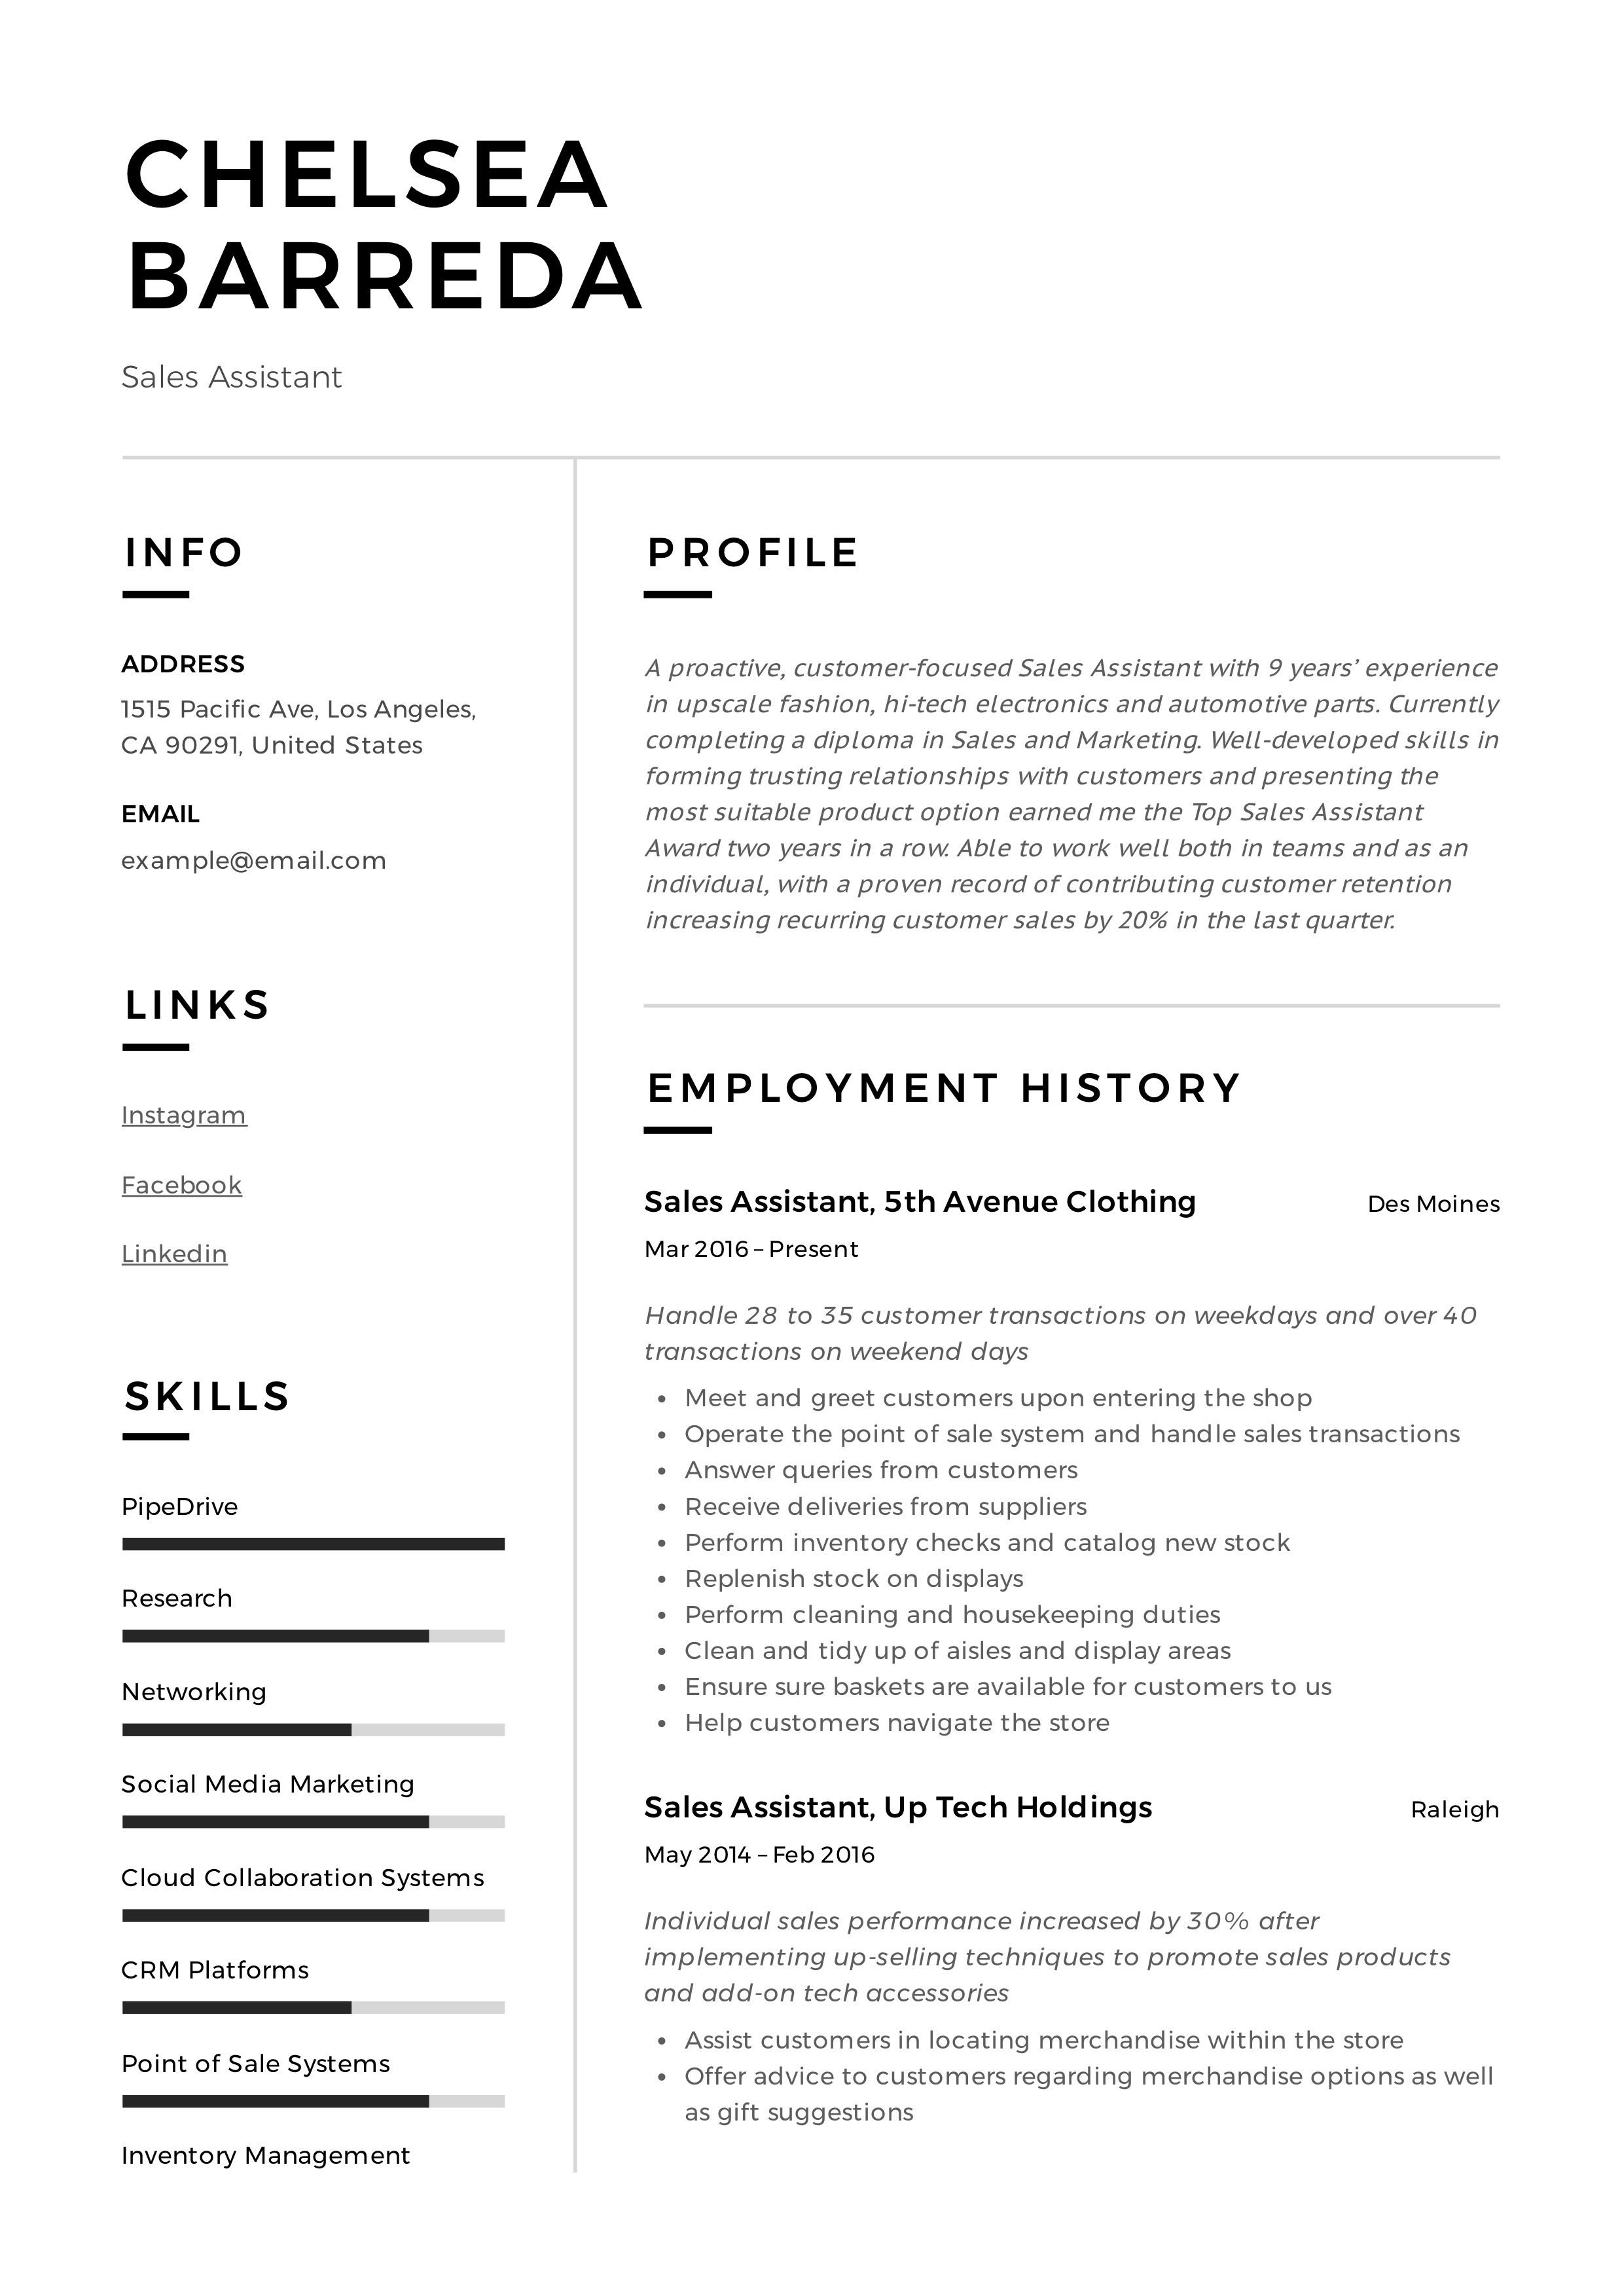 Sales Assistant Resume & Writing Guide in 2020 Resume